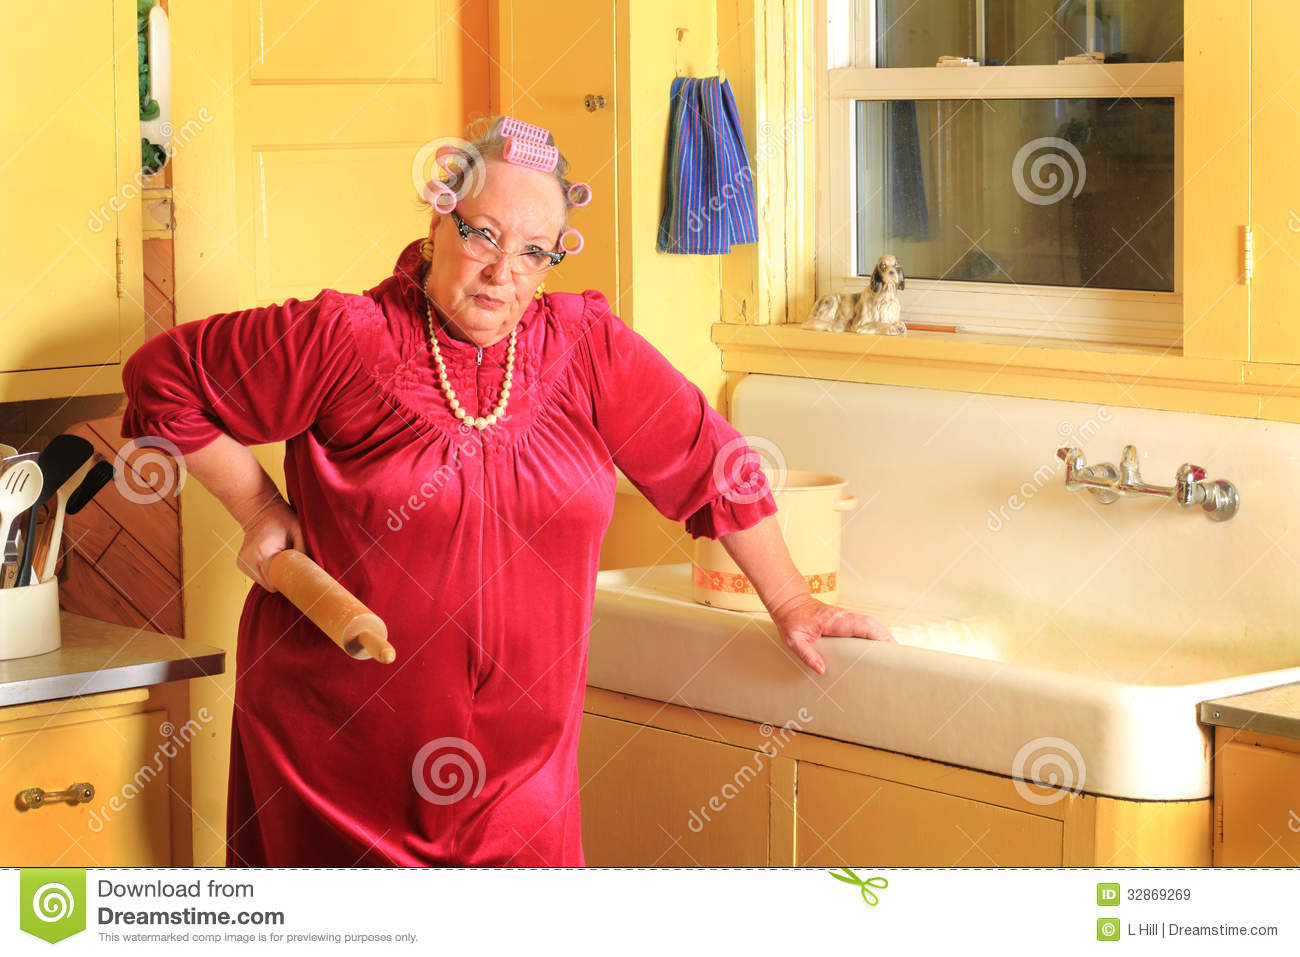 Castle Home Plans Grumpy Senior Granny With Rolling Pen Royalty Free Stock